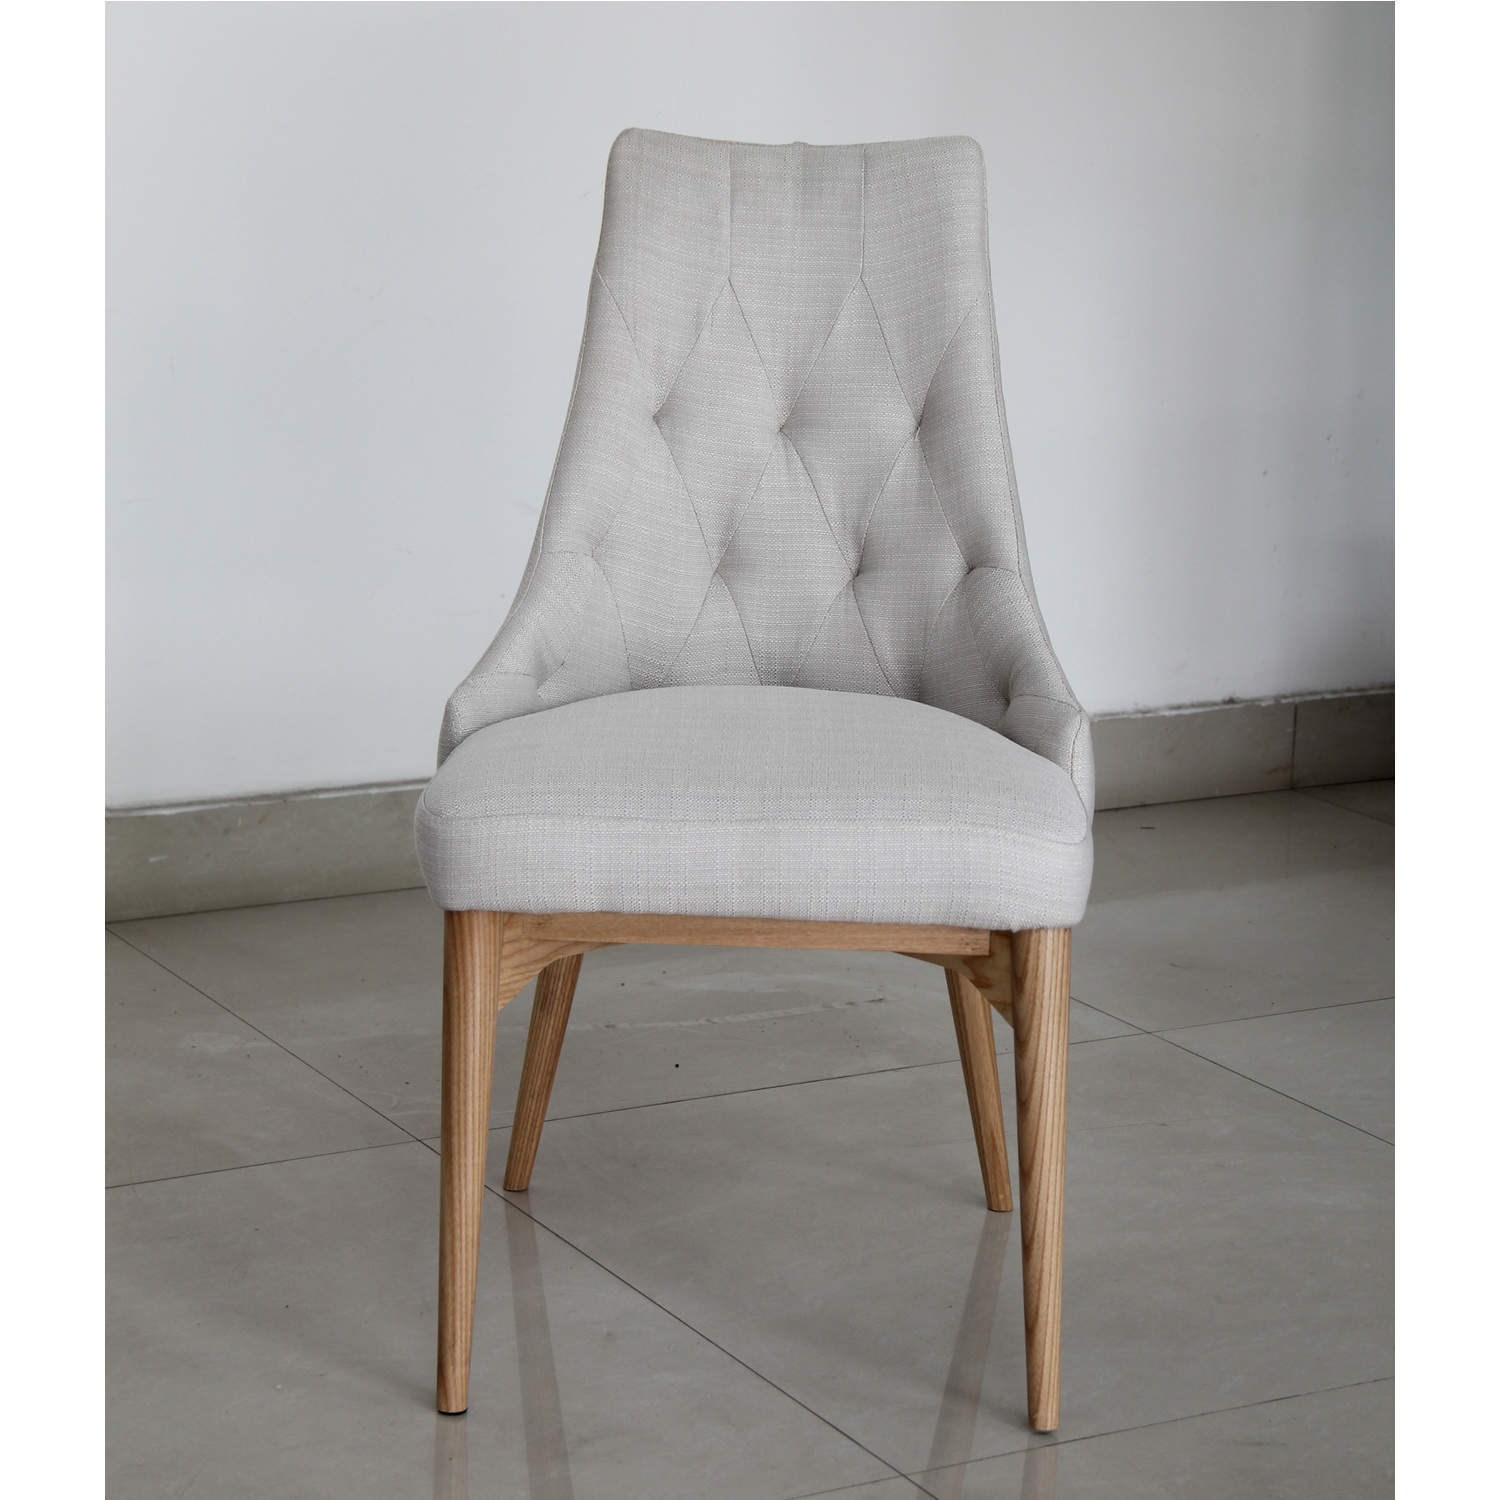 Single Stone Upholstered Dining Chair Wooden Legs EBay